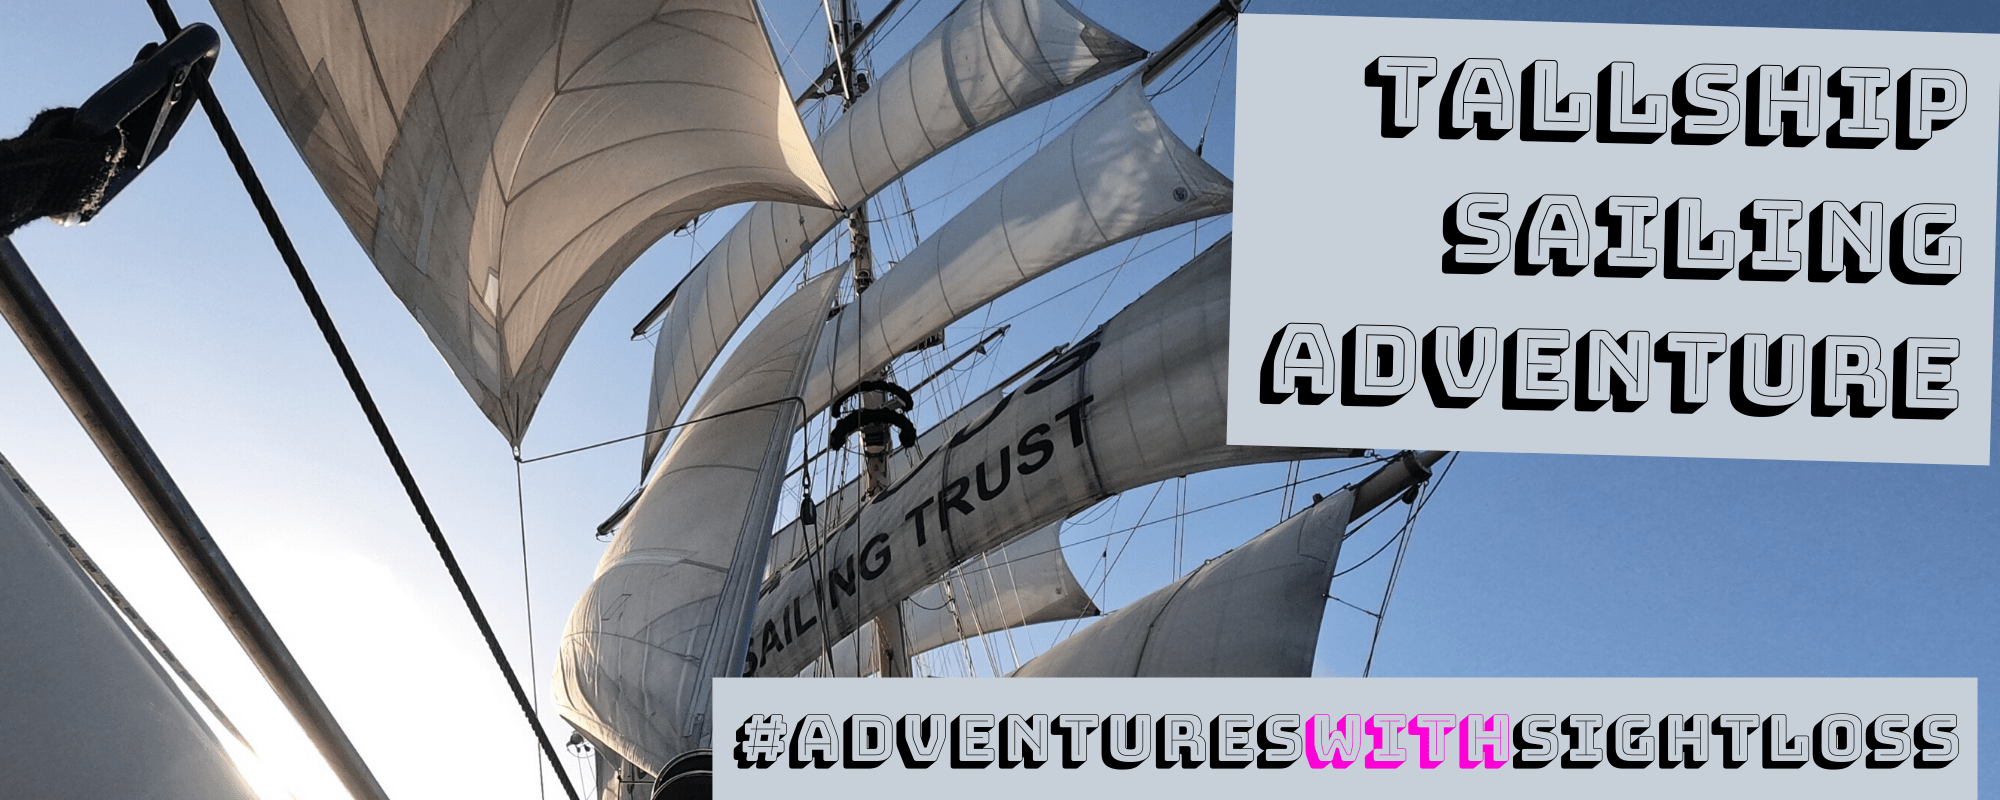 Tallship Sailing Adventure #AdventuresWithSightloss